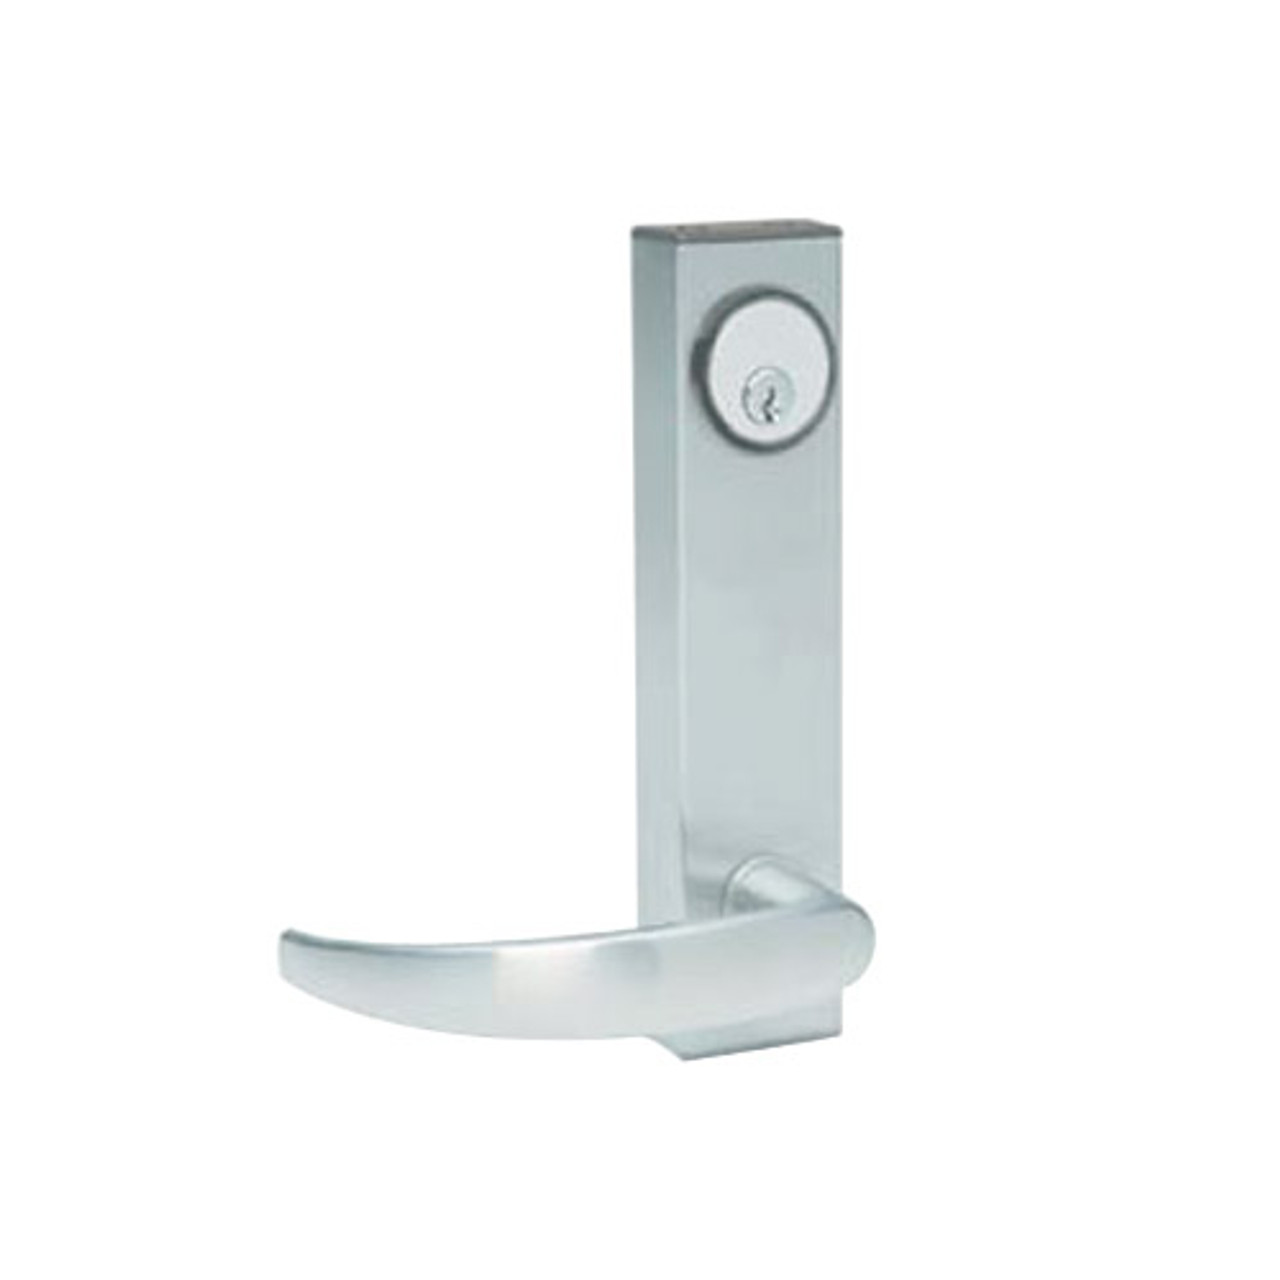 3080E-01-0-33-35 US32 Adams Rite Electrified Entry Trim with Curve Lever in Bright Stainless Finish